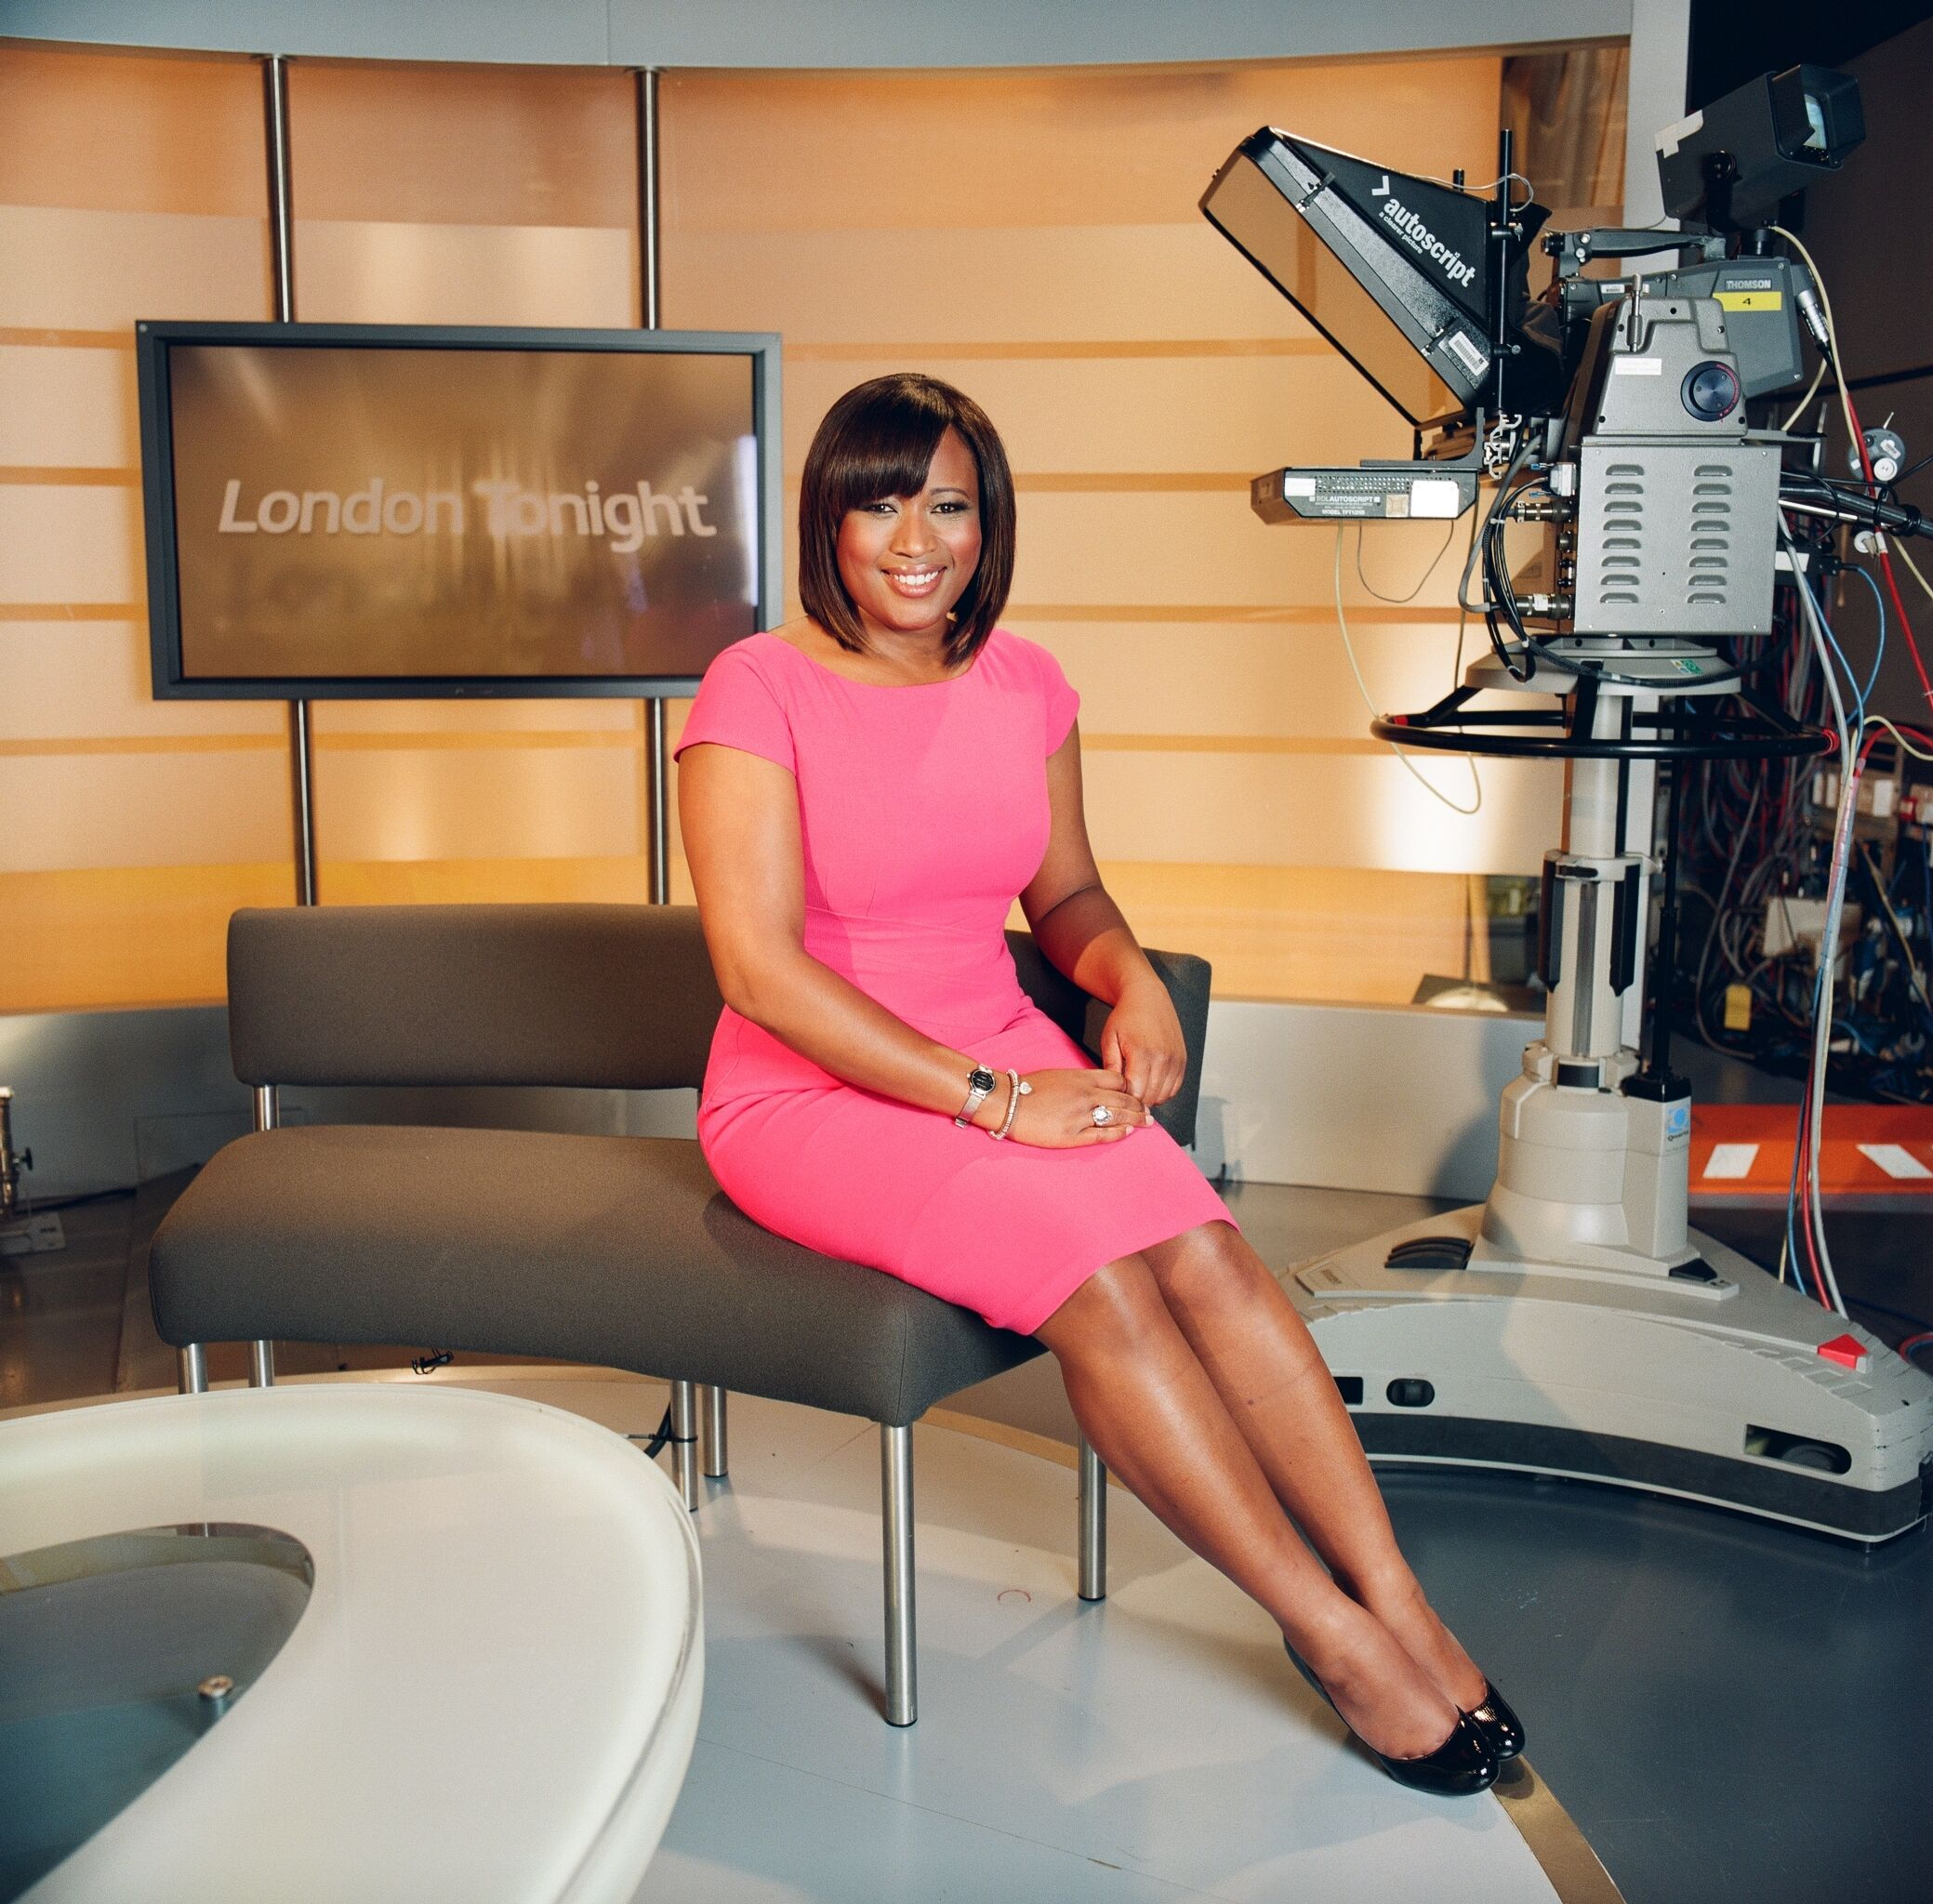 I Mpossible Women Charlene White Itn News Presenter Black Celebrities News Presenter Newsreader